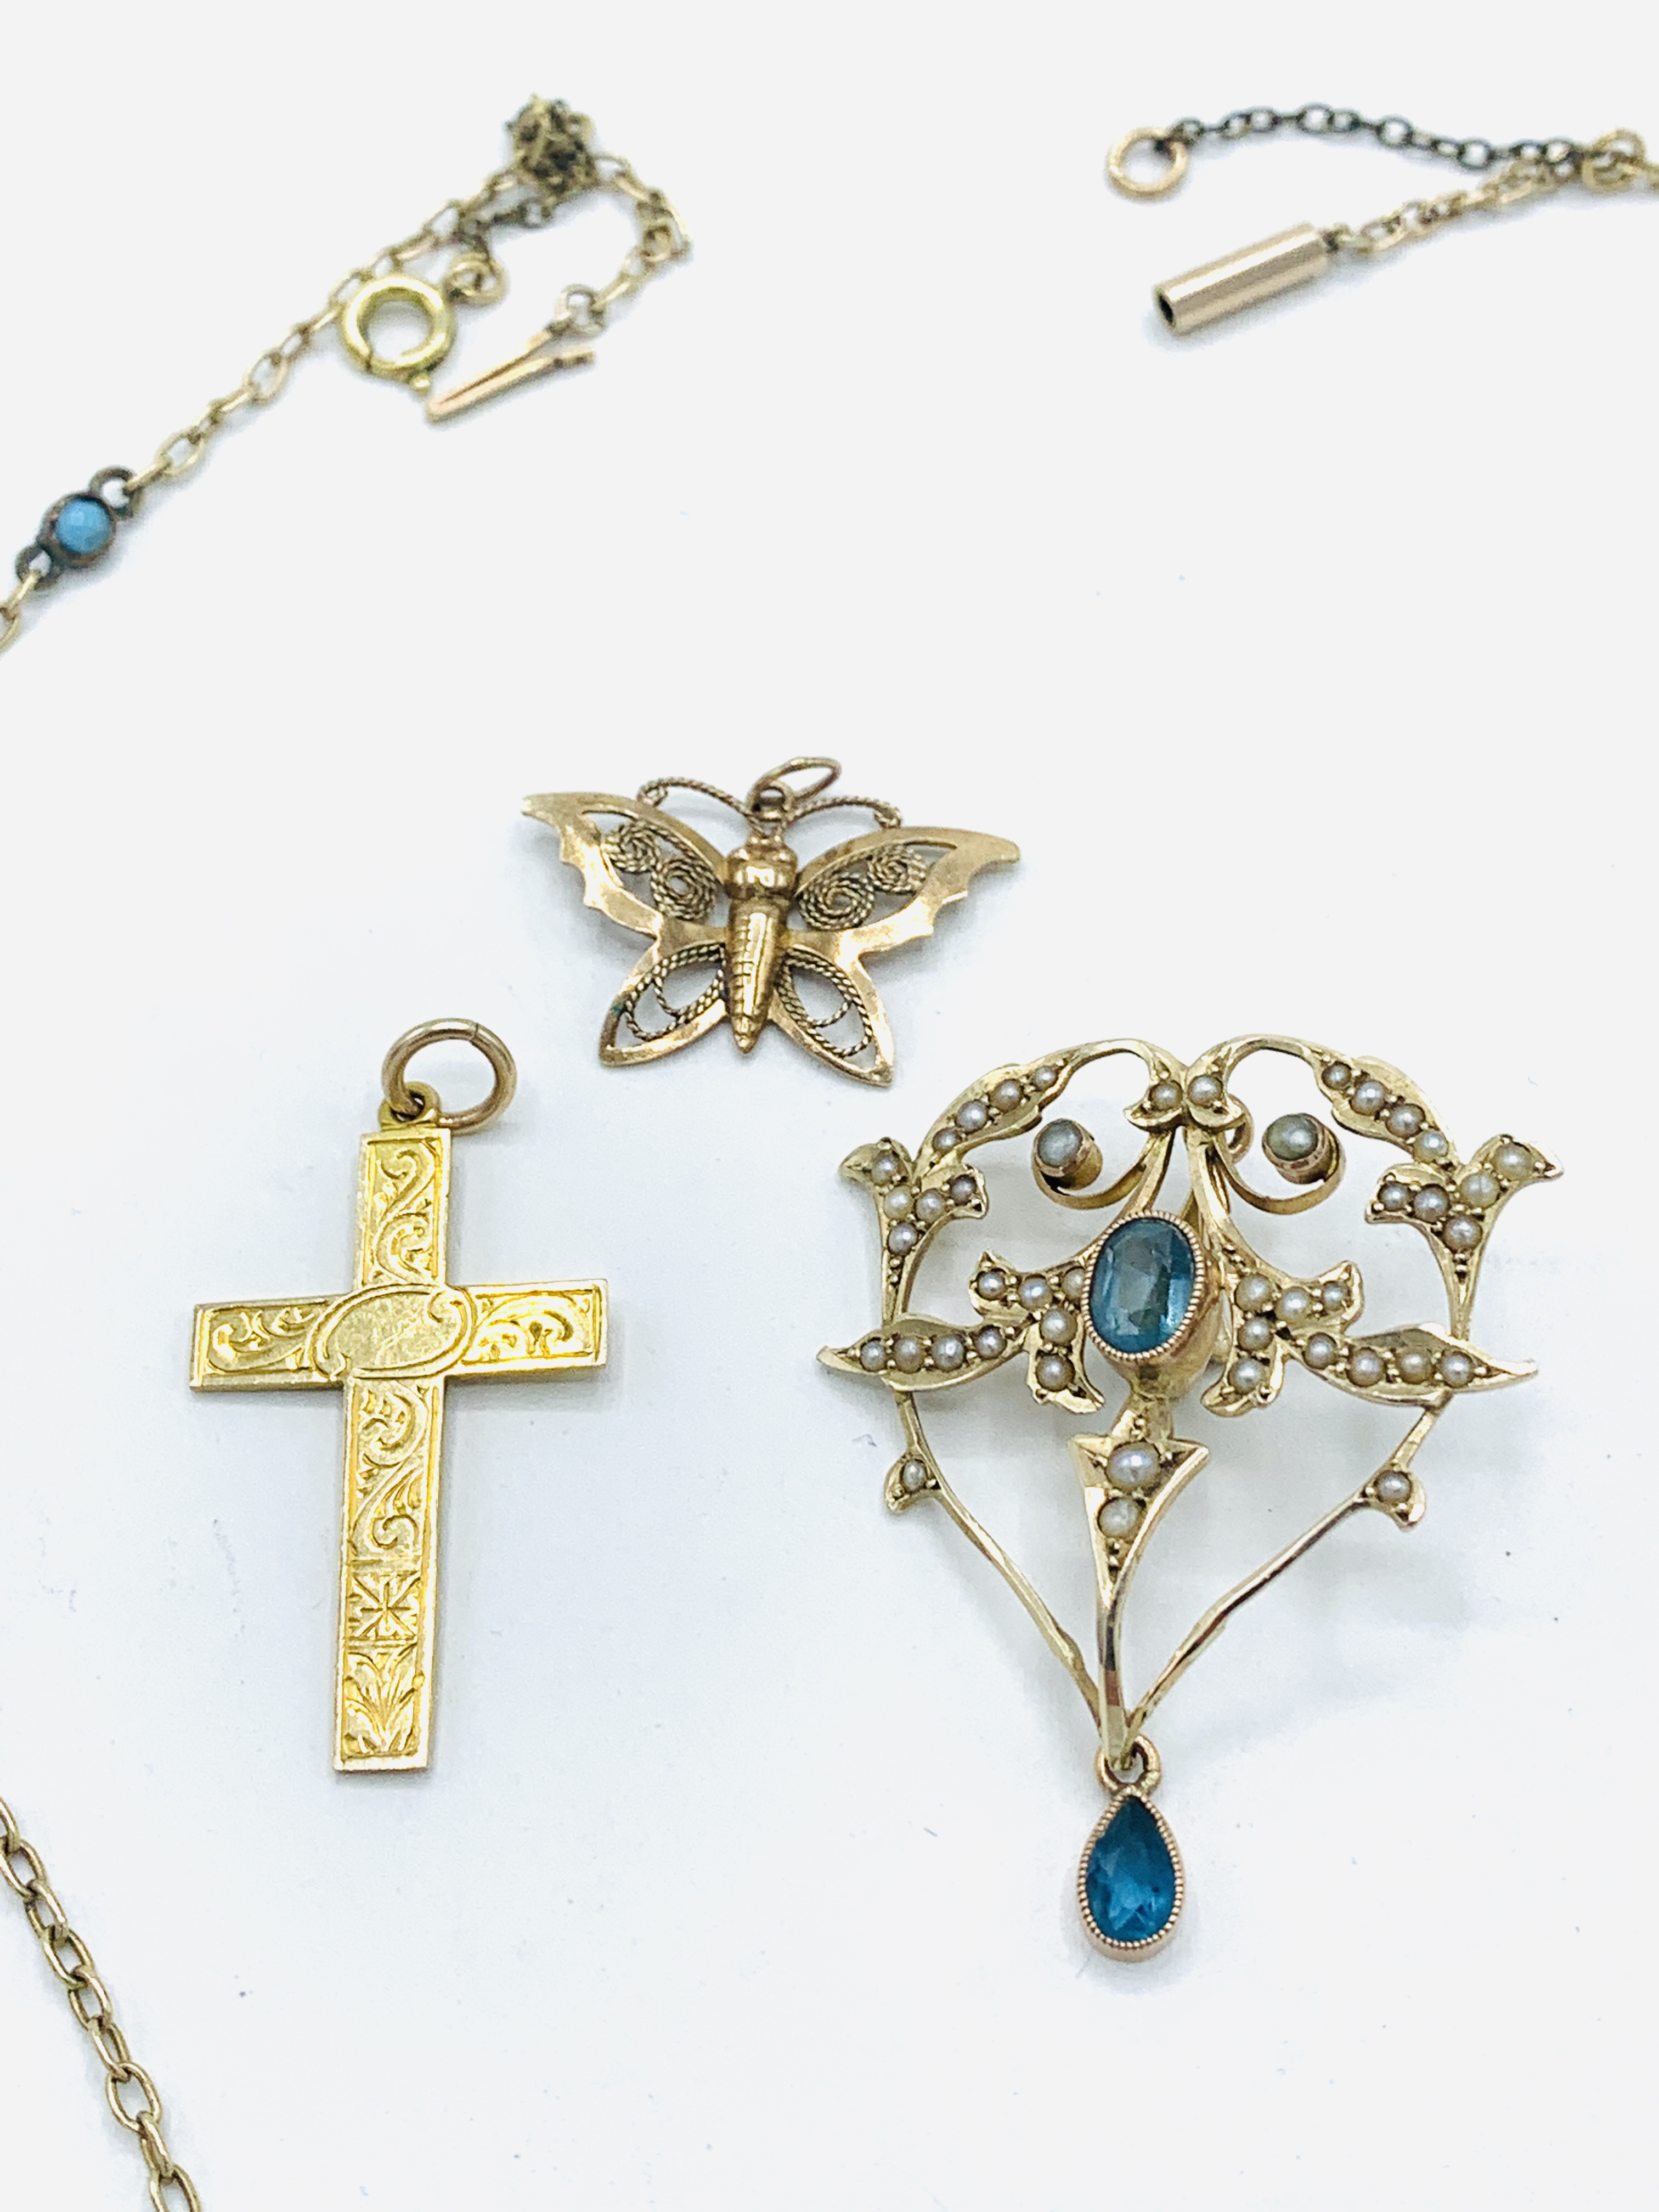 9ct gold aquamarine and seed pearl pendant; gold and turquoise chain; gold cross; butterfly brooch - Image 5 of 5